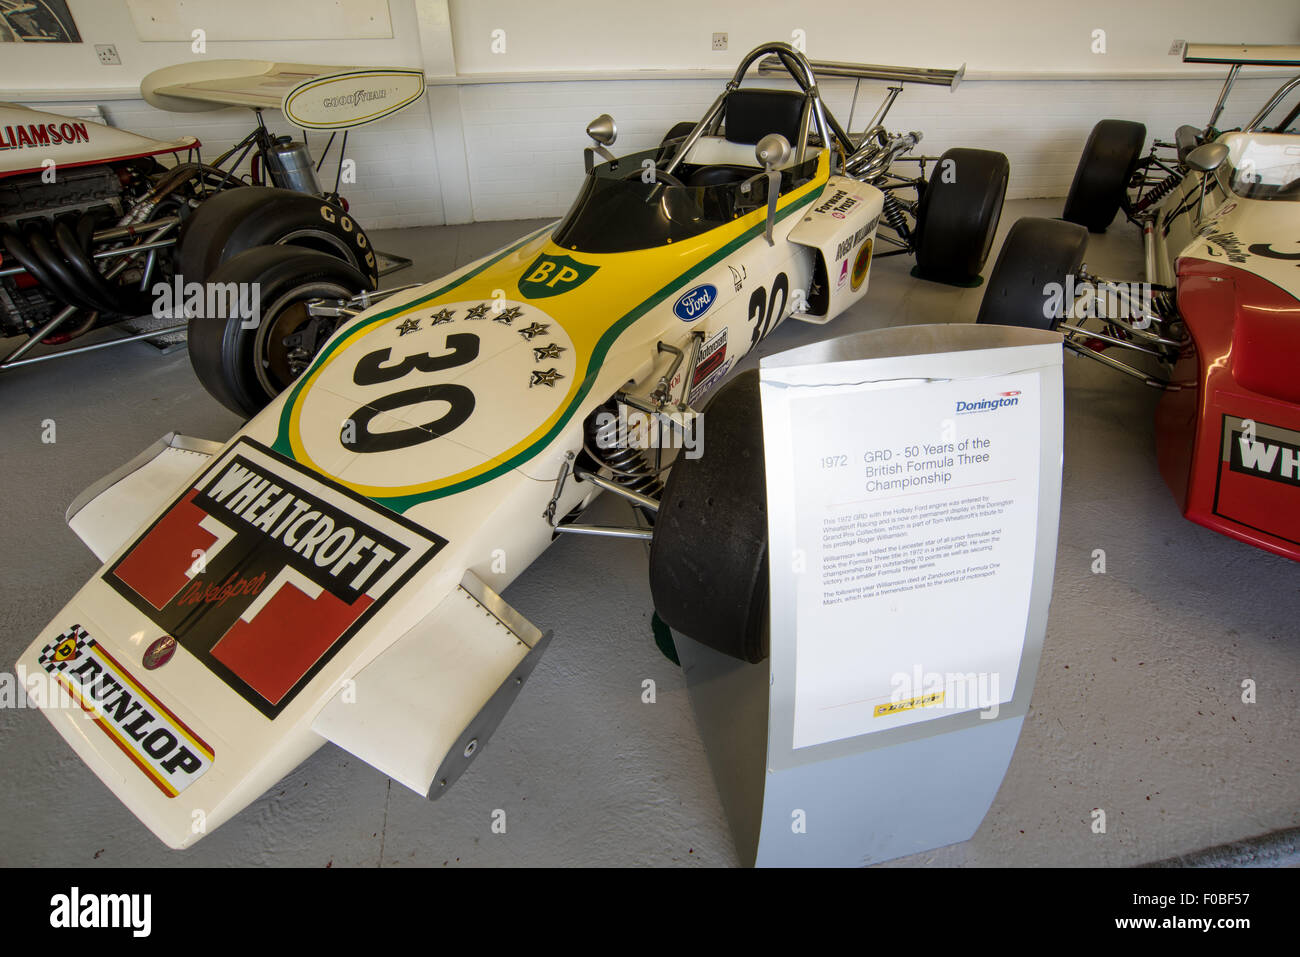 1972  GRD driven by Roger Williamson on display at  the Museum of Donington Raceway Leicestershire, England UK - Stock Image